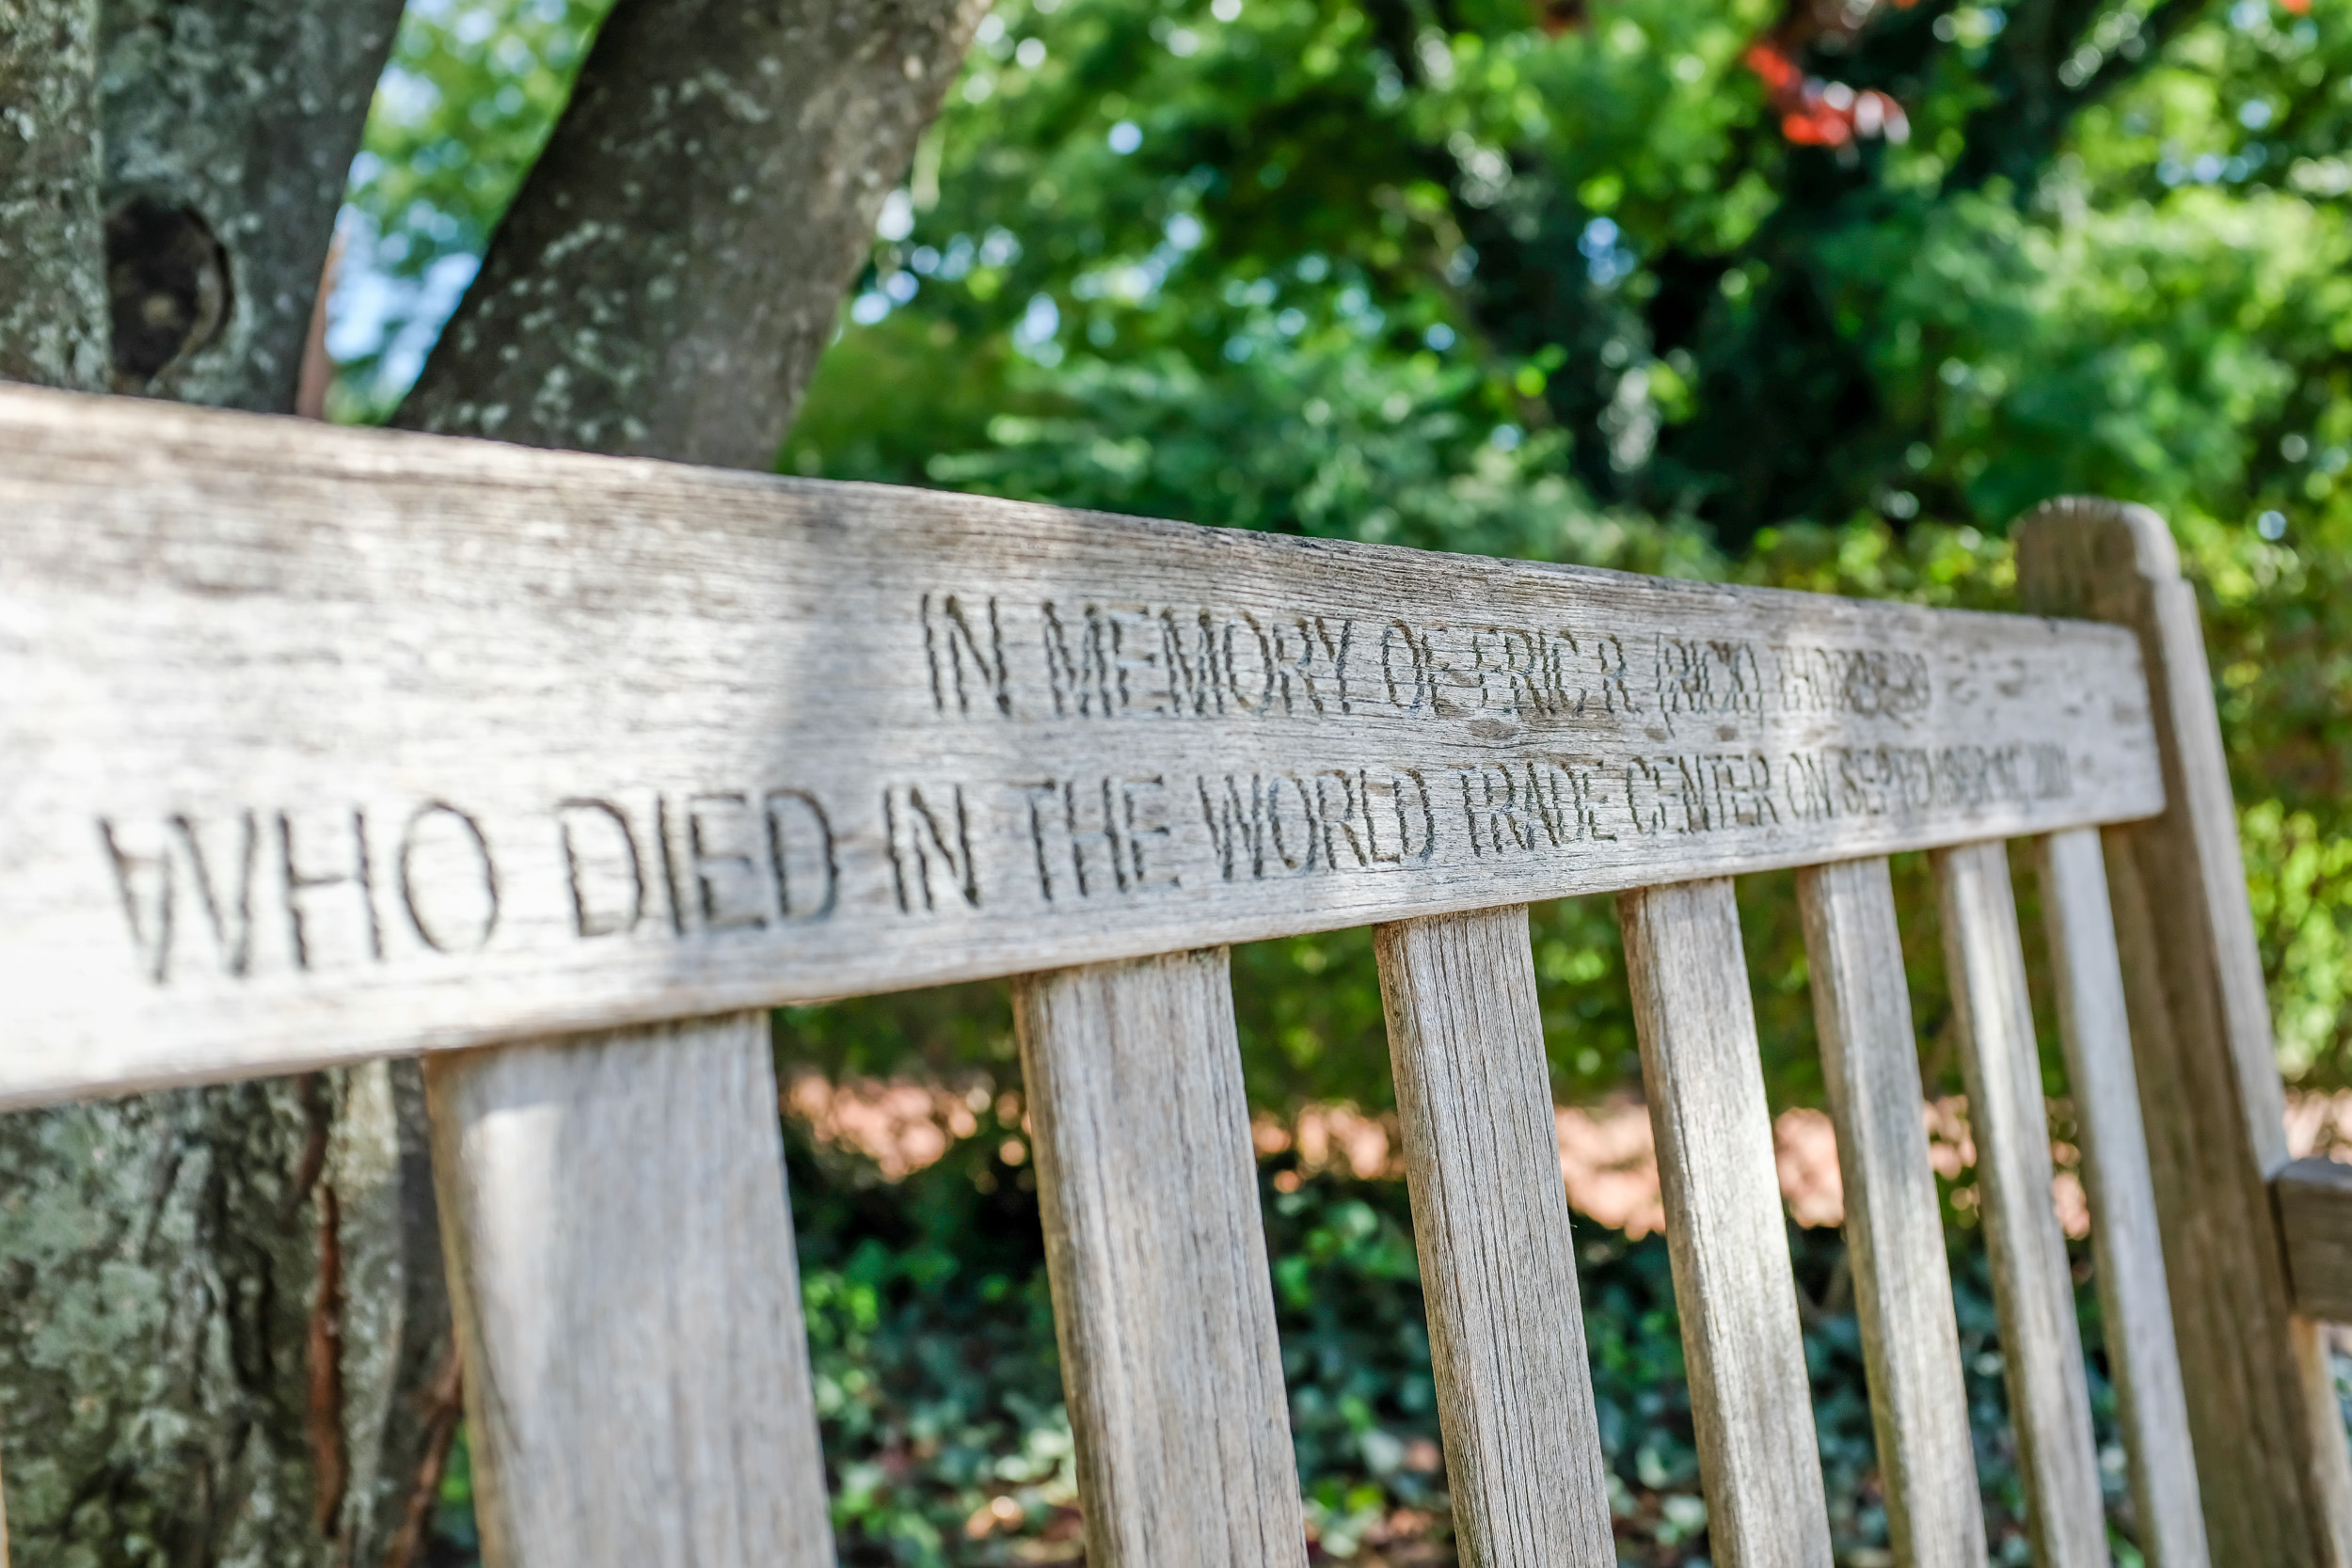 """A bench inscribed with, """"In memory of Eric R. (Rick) Thorpe '89 who died in the World Trade Center on September 11, 2001."""""""